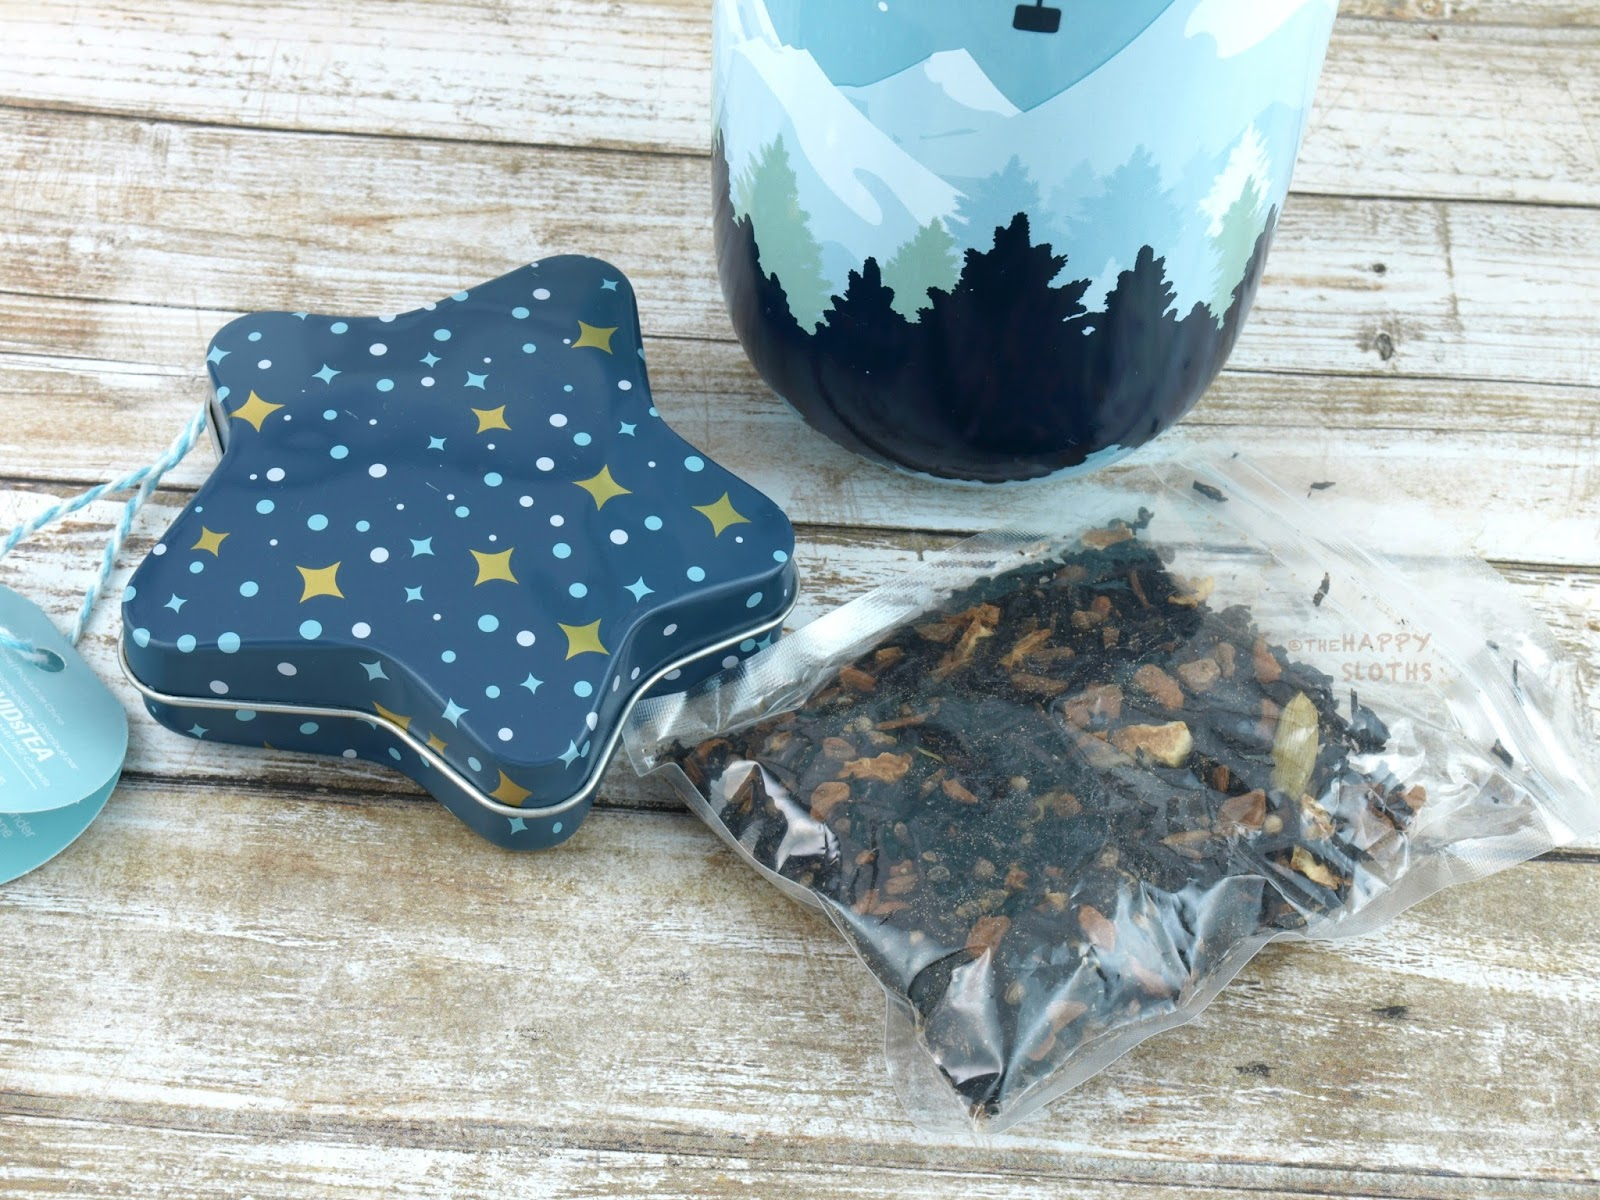 DAVIDsTEA cardamom french toast filled star ornament